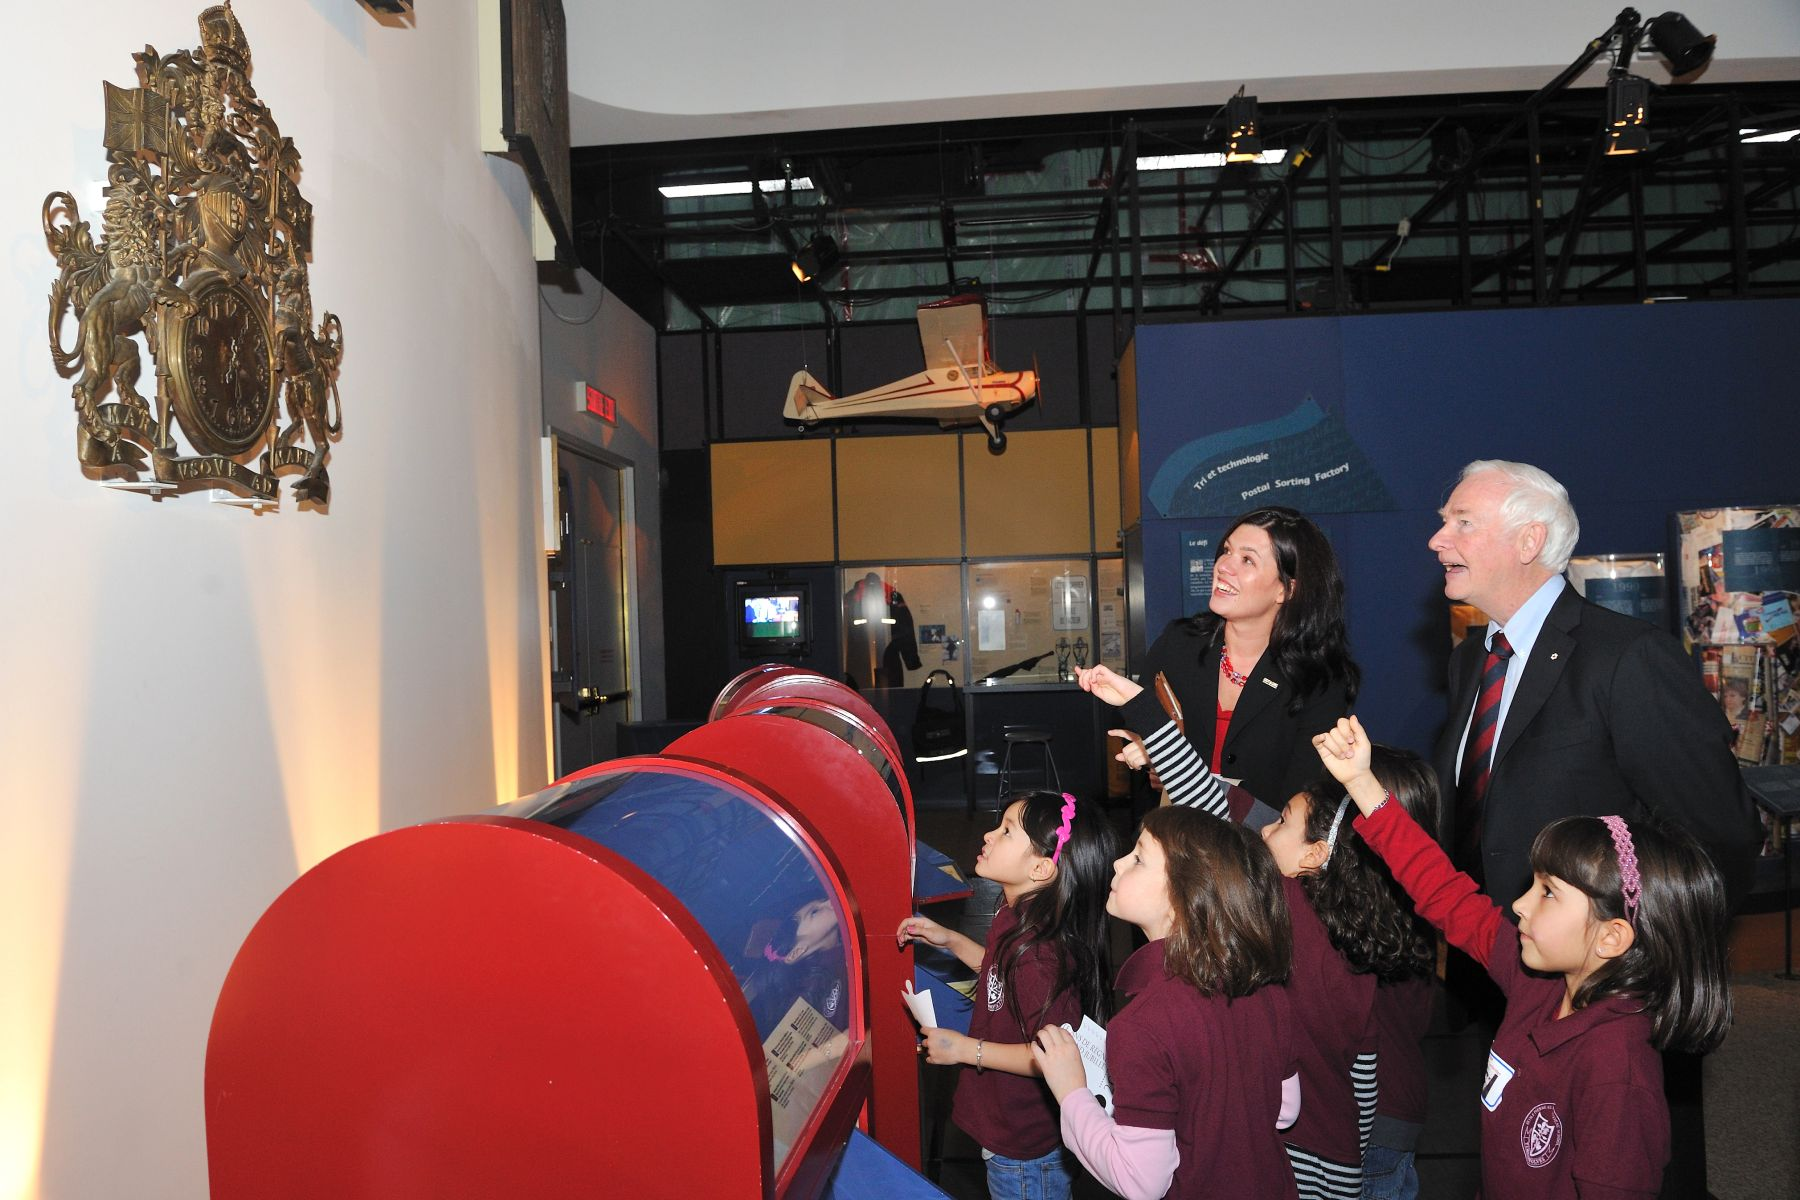 Following the unveiling of the commemorative stamp, the Governor General was joined by 50 third grade students from two Ottawa-Gatineau area schools to take part in a scavenger hunt inside the Canadian Postal Museum to learn more about the history and legacy of Canada's postal system.